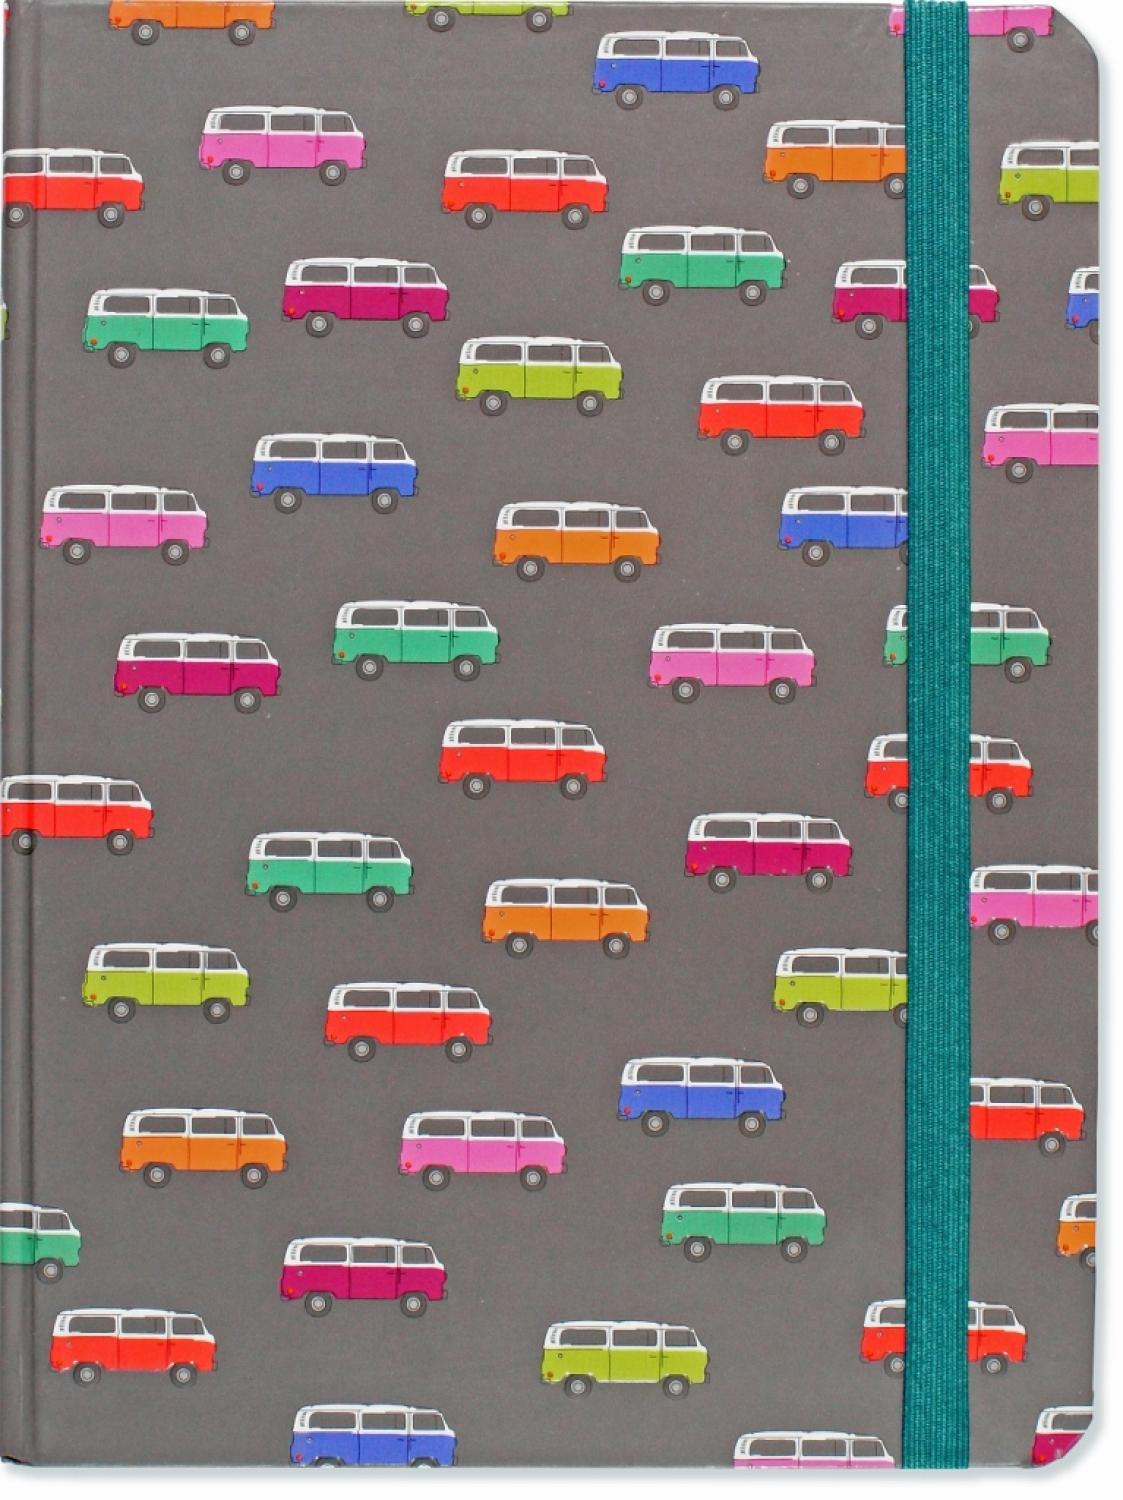 Microbus Journal